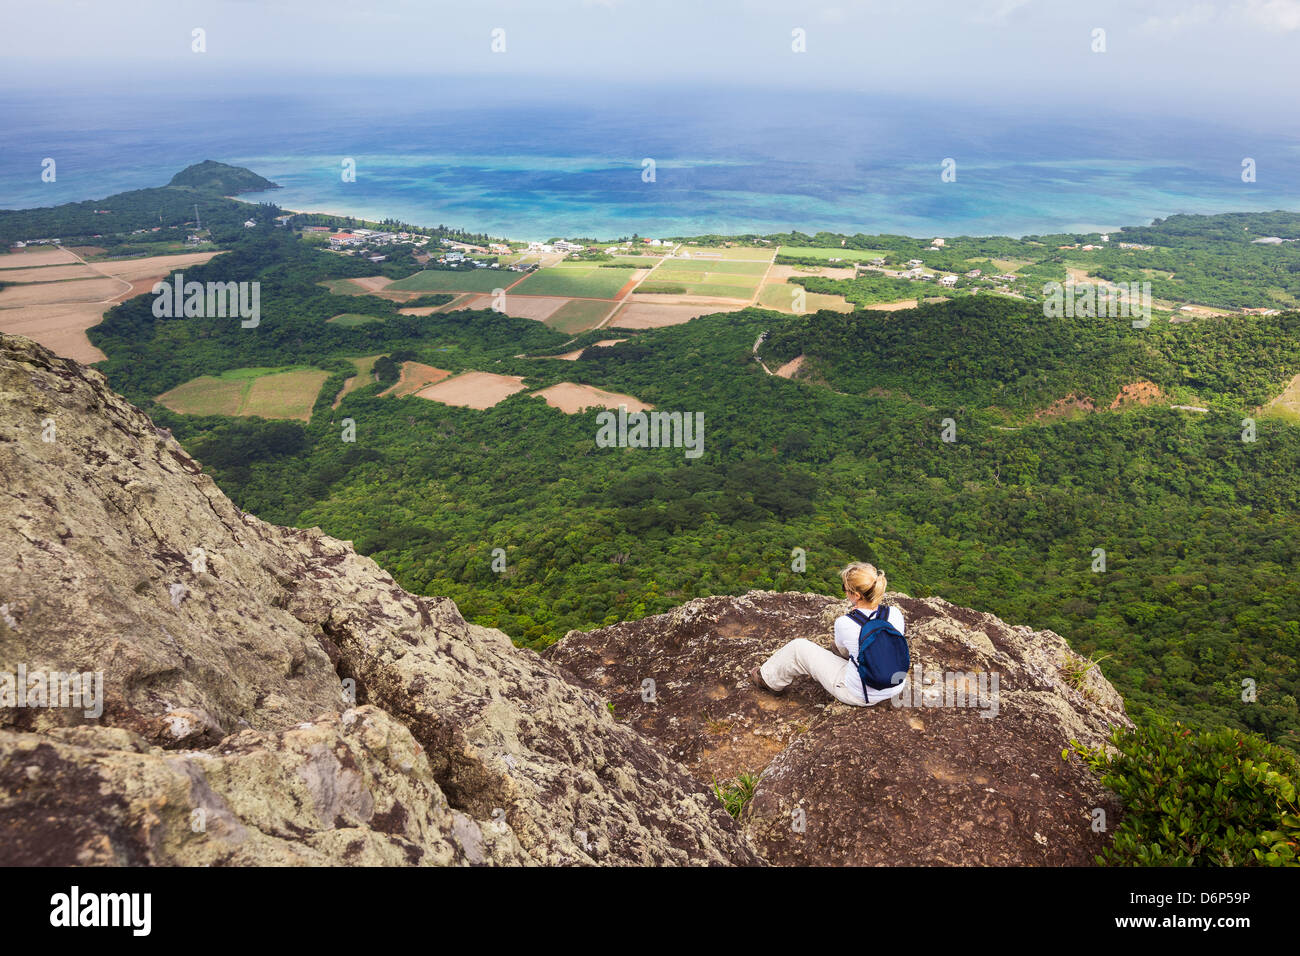 A woman sits and admires the coastal view from the top of Mount Nosoko in Ishigaki, Okinawa, Japan - Stock Image